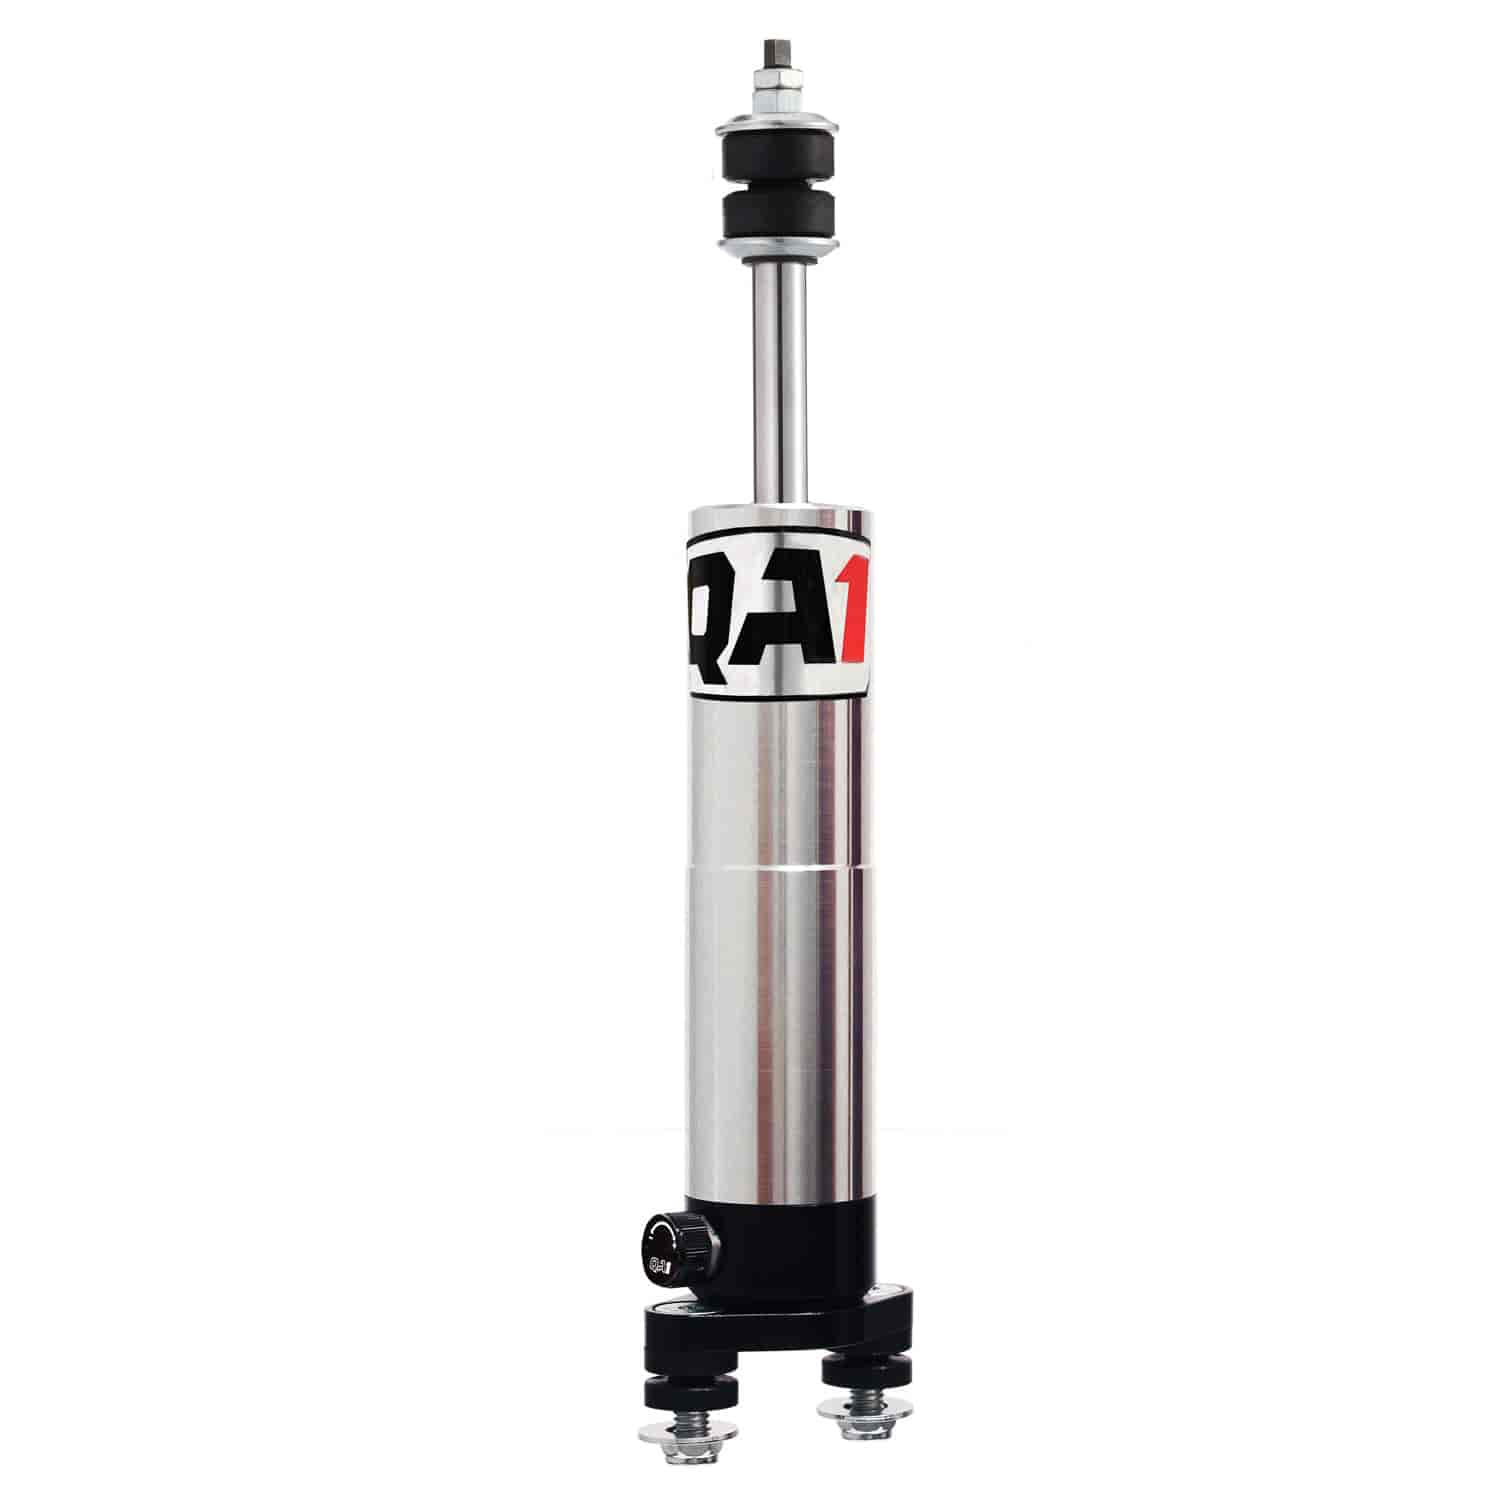 QA1 TS506 - QA1 Stocker Star Adjustable Shocks